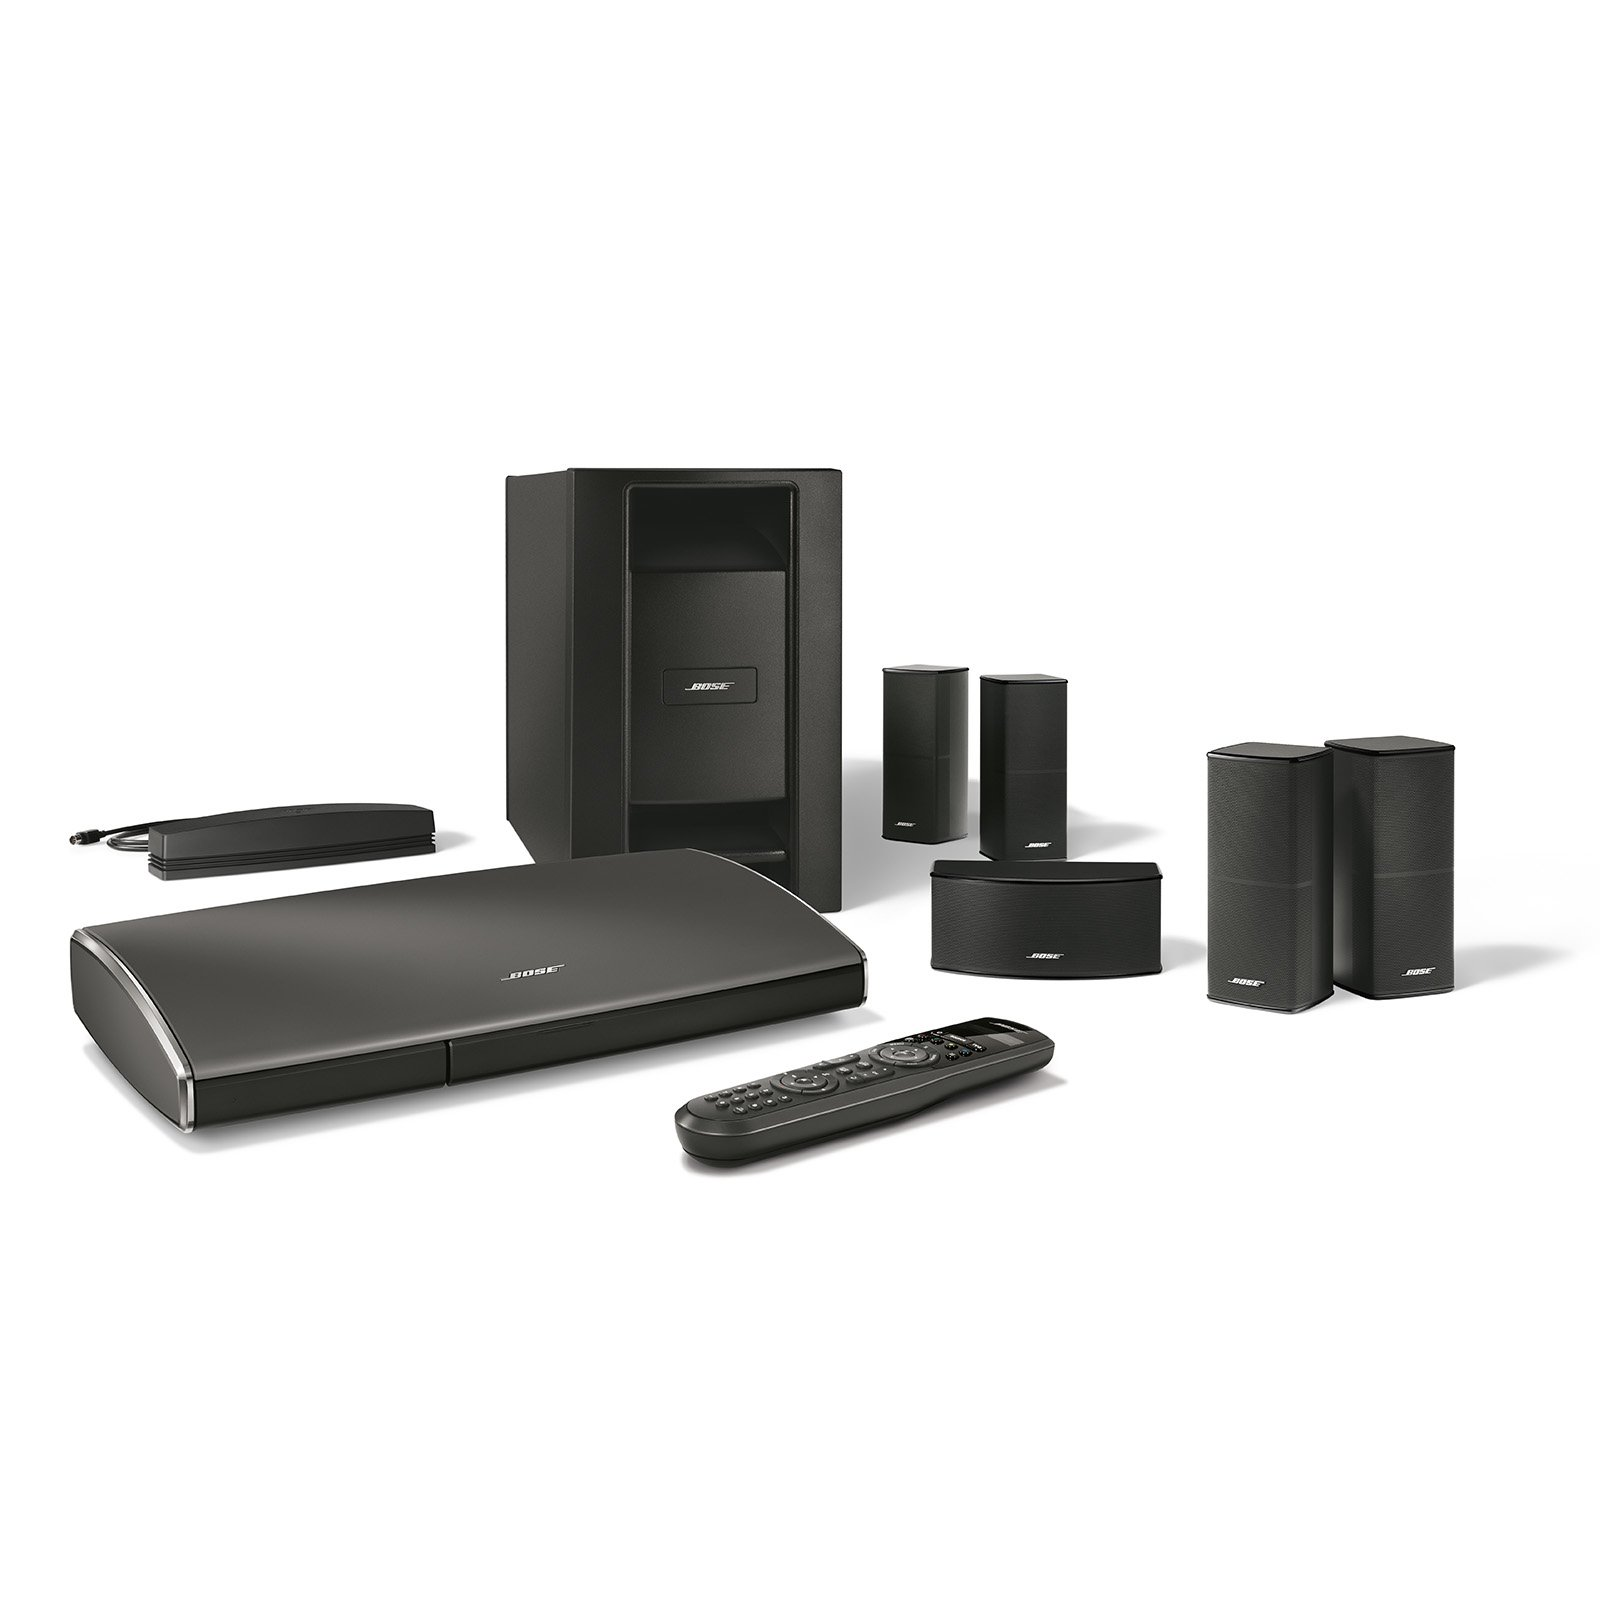 Bose Lifestyle SoundTouch 535 Entertainment System by Bose